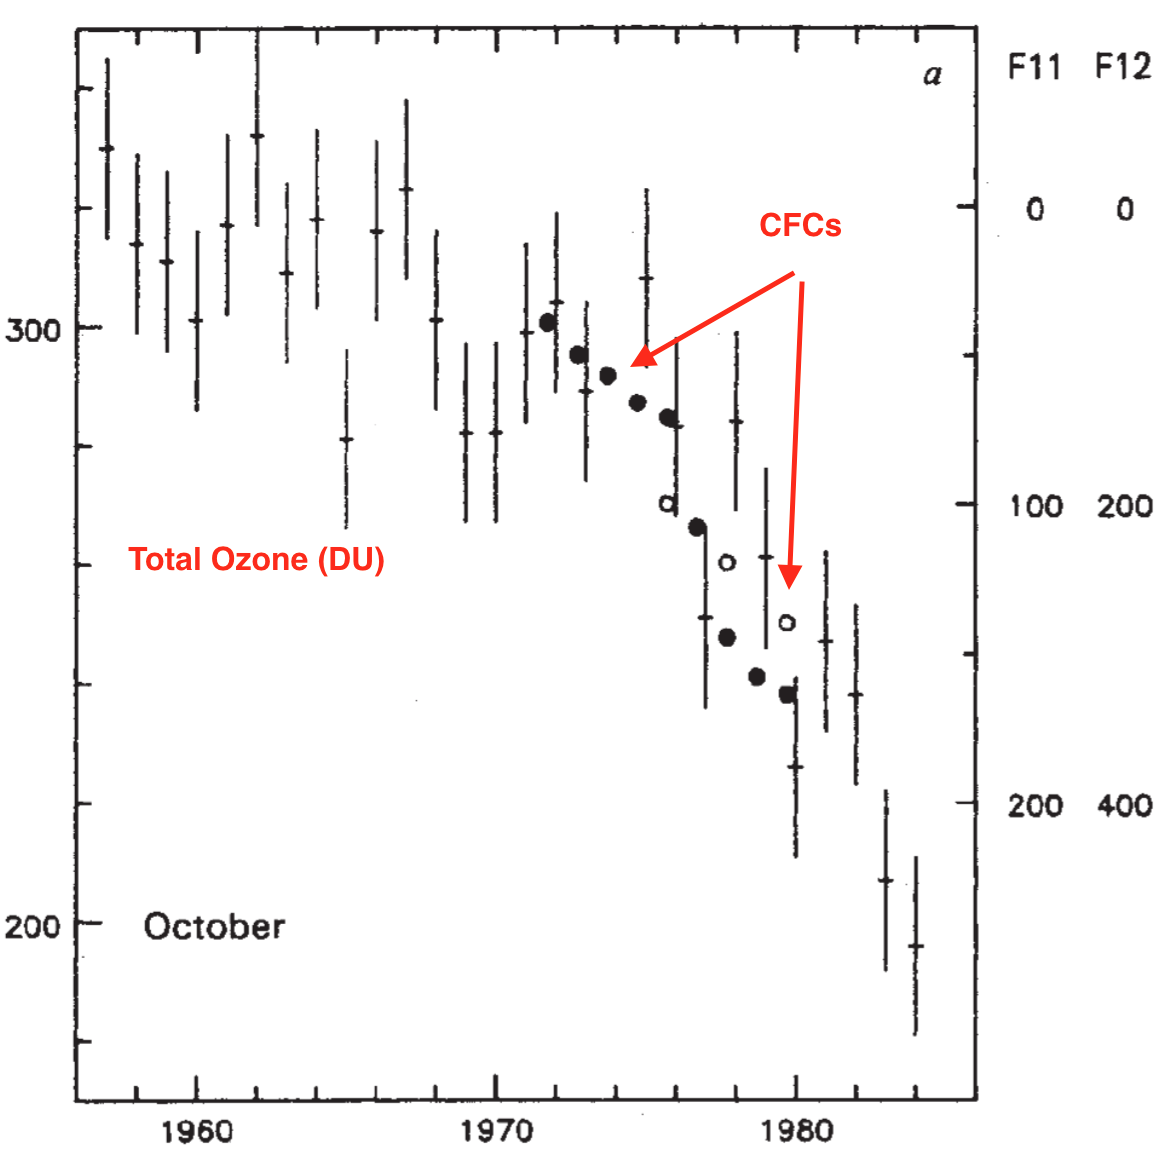 Farman et al 1985 figure showing decreases in ozone to Oct 1983